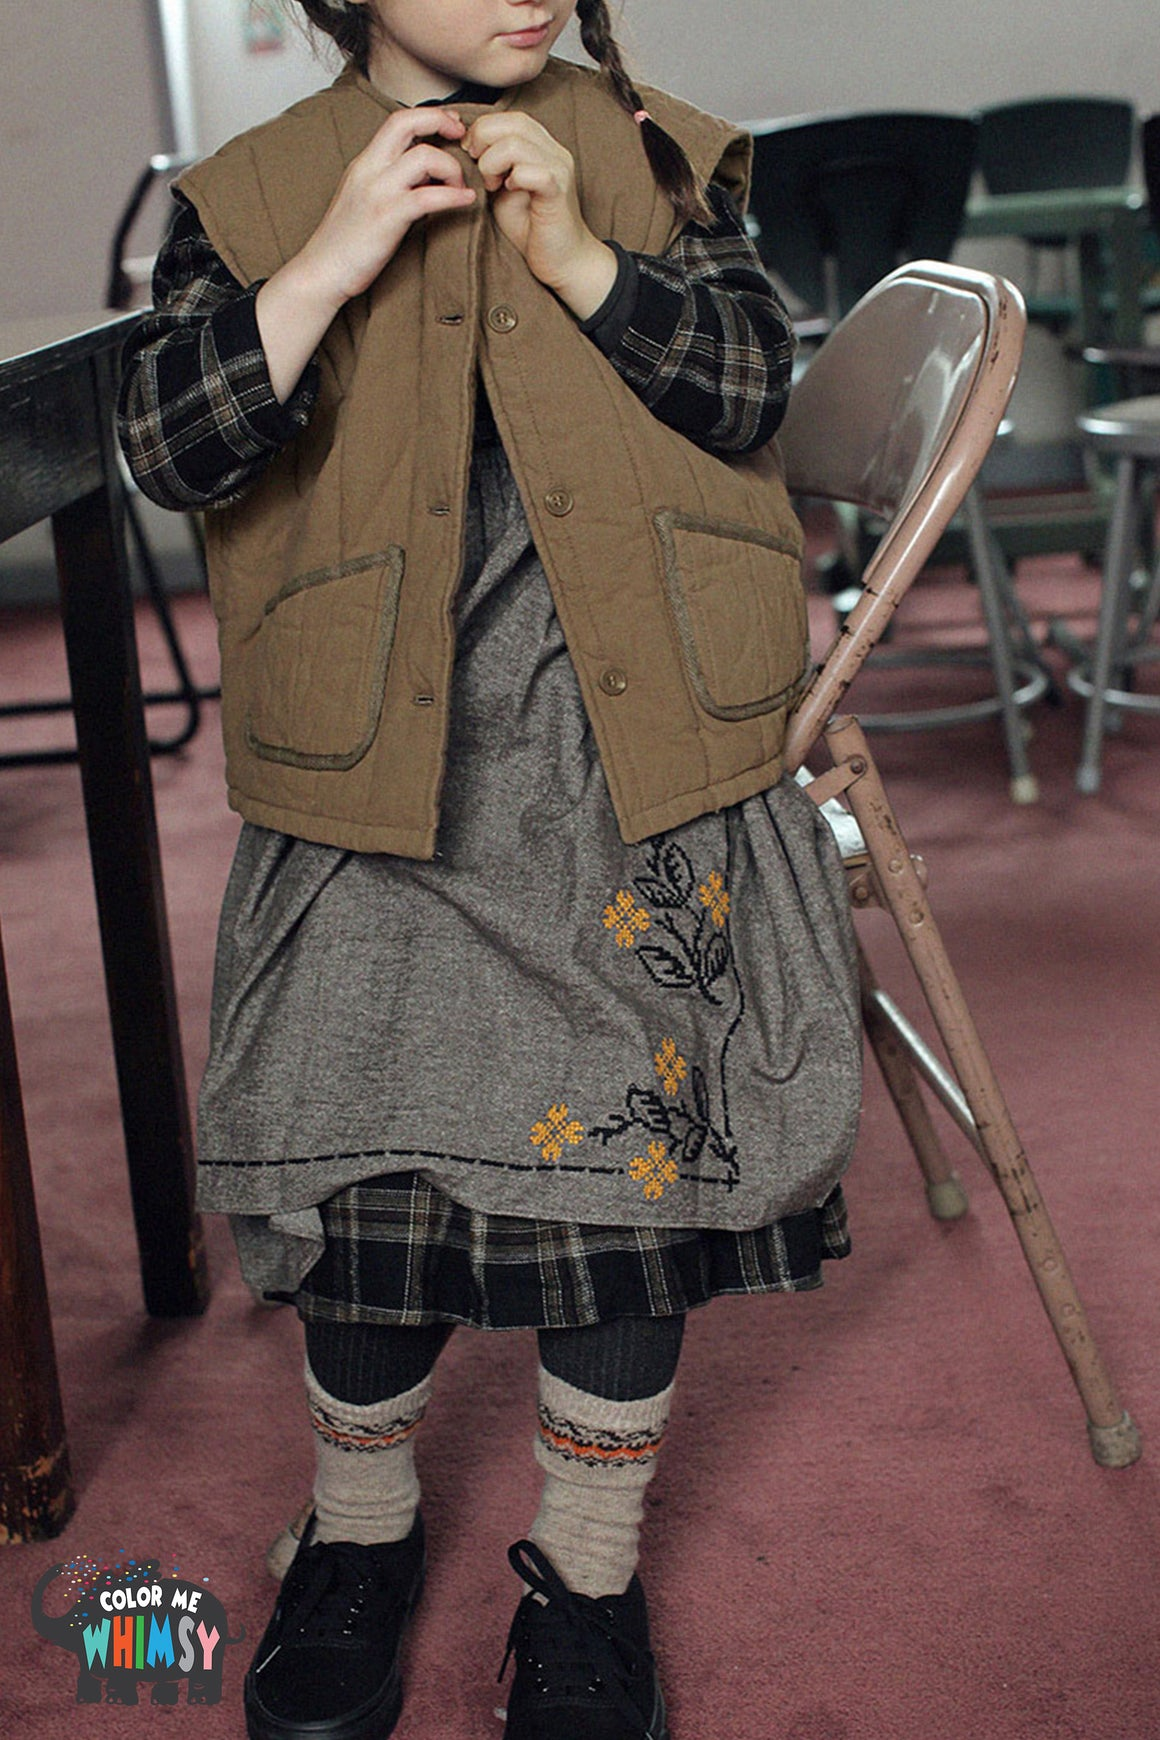 SCON Tovy Quilted Vest at Color Me WHIMSY Hip Kid's Fashion Ethically Made in South Korea